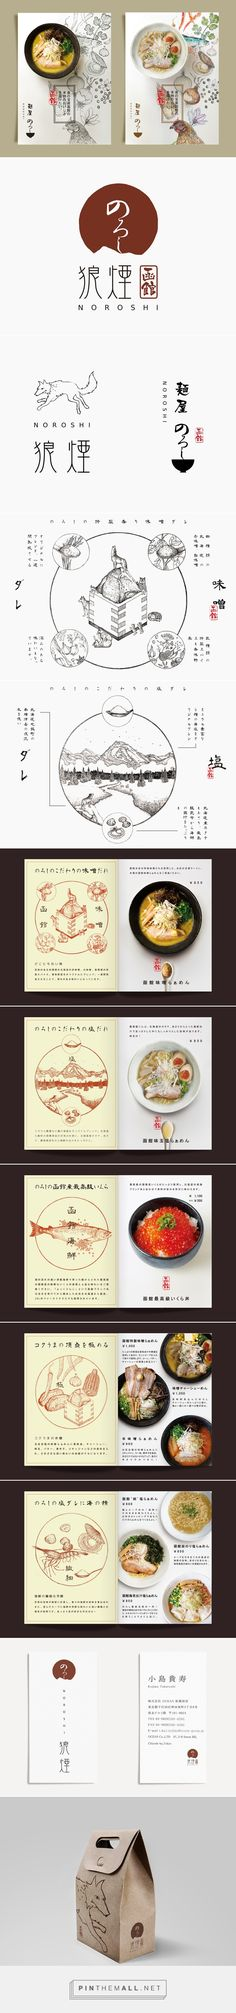 Devi Soewono | NOROSHI (麺屋のろし) a Japanese ramen branding identity project designed by Lee Ching Tat(李 政達)http://www.devisoewono.com/design/noroshi-(麺屋のろし)/ Simplicity of cover and an idea for back-cover page.